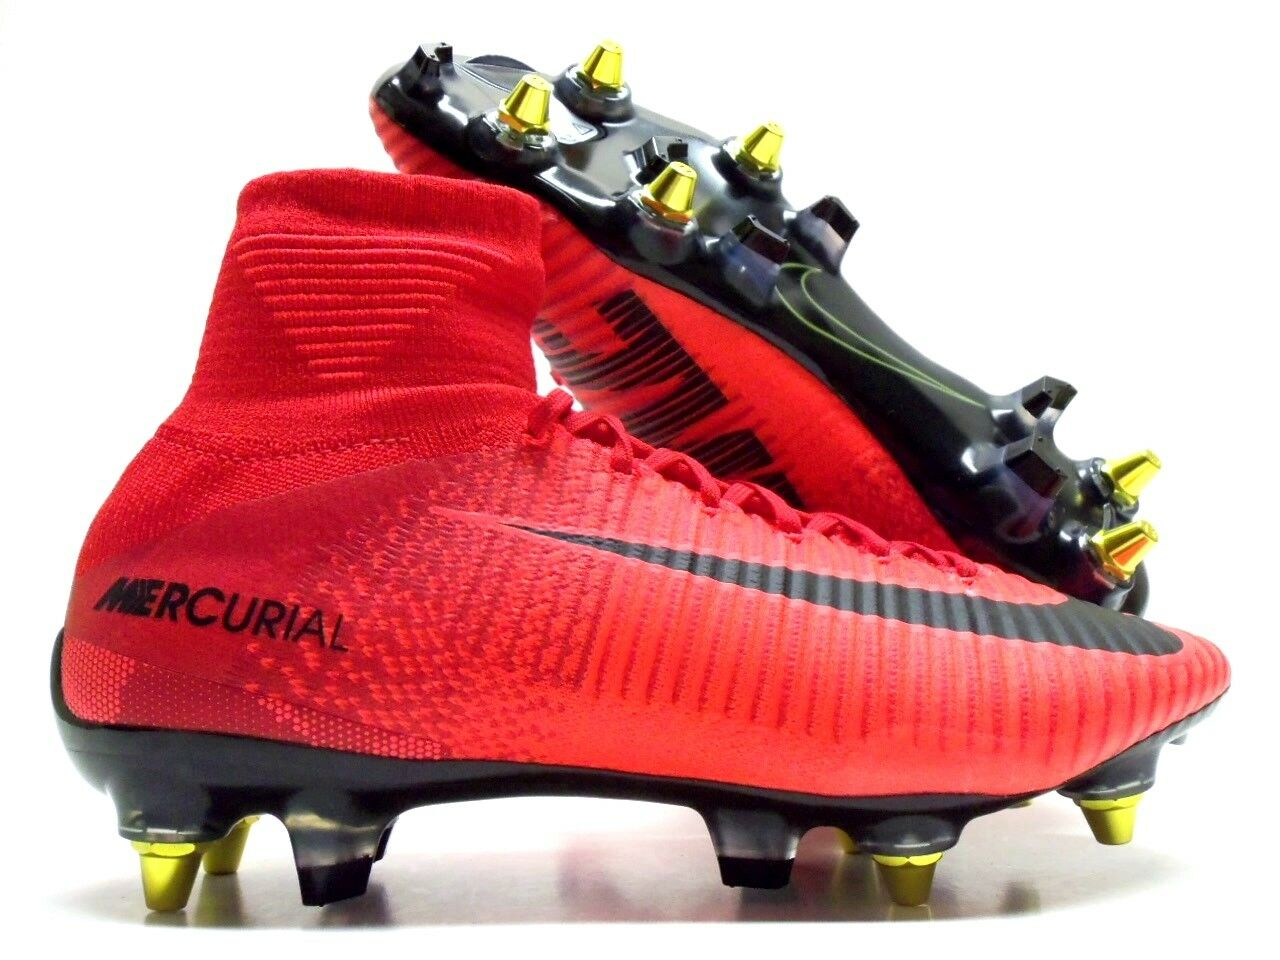 NIKE MERCURIAL SPFLY V DF SG PRO AC SOCCER CLEAT RED SIZE MEN'S 11 [889286-616]